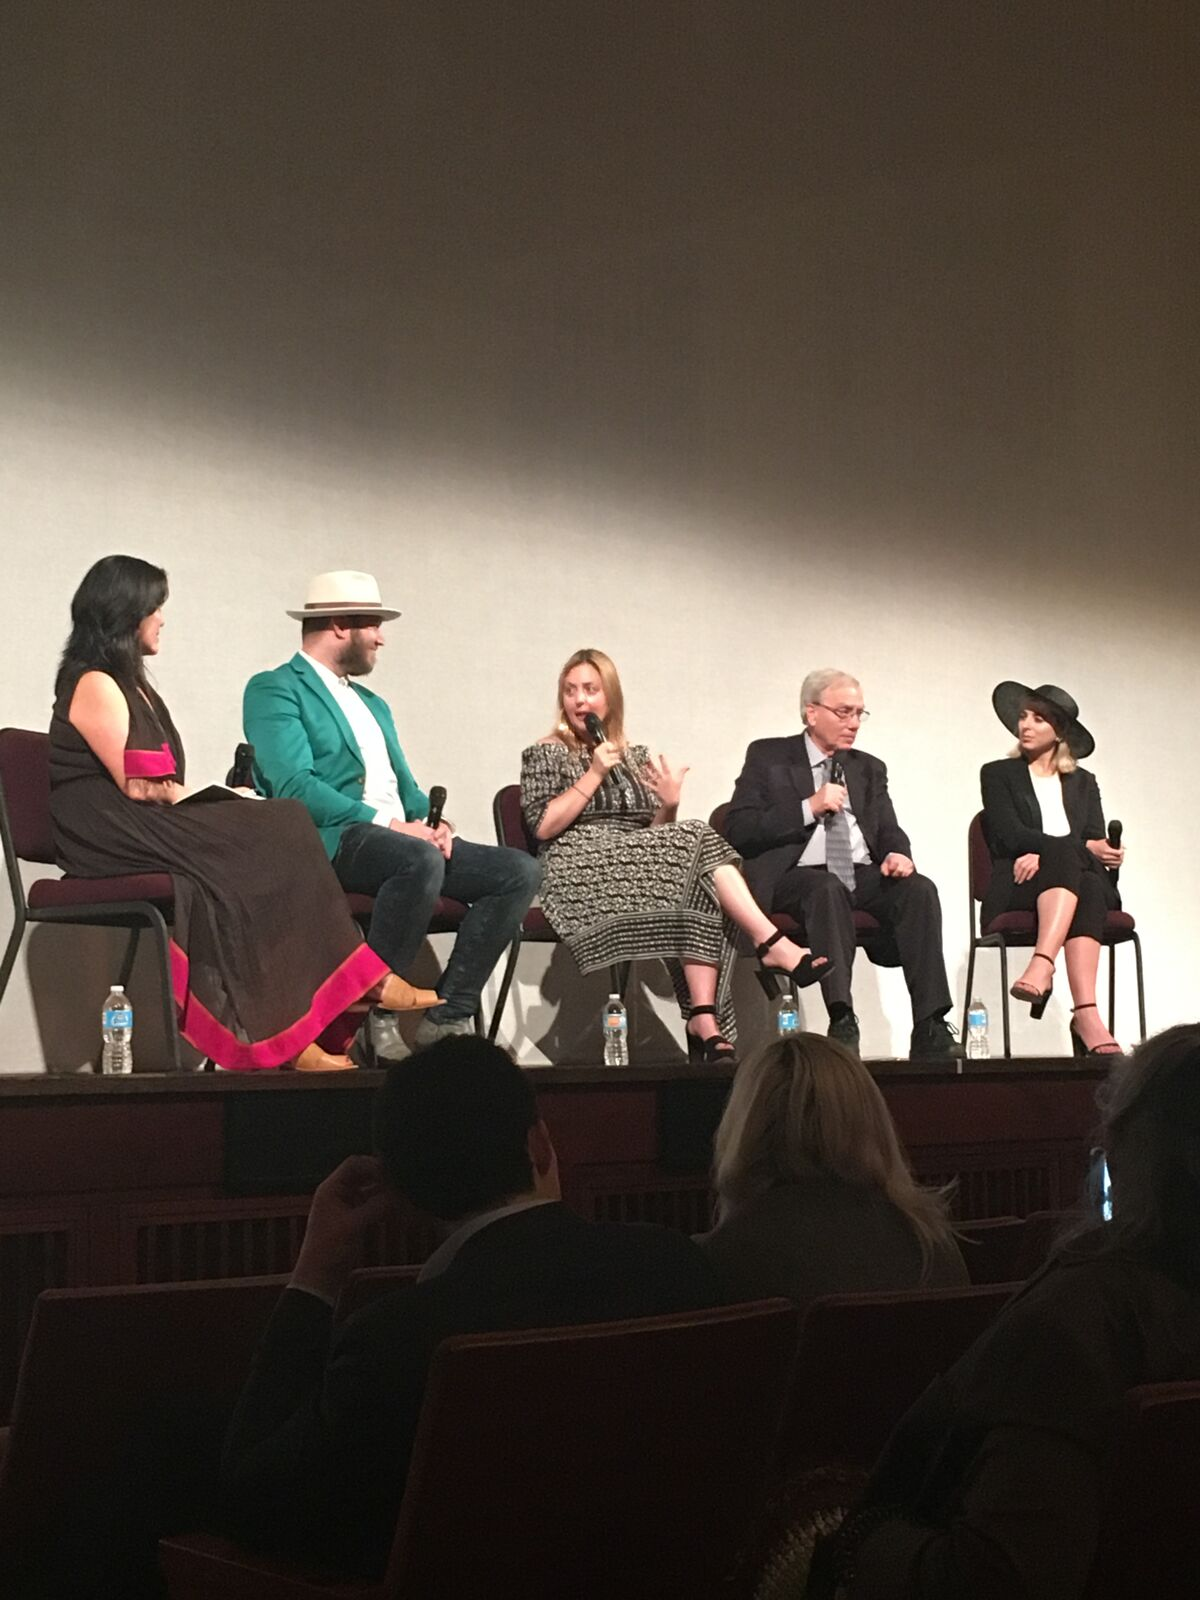 Following a Kennedy Center performance of  Hubble Cantada , Lumahai's Elena Park moderated an onstage panel with [L-R, second from left]librettist Royce Vavrek, composer Paola Prestini, Hubble Telescope astrophysicist Mario Livio, and VR filmmaker Eliza McNitt ( Fistful of Stars ).